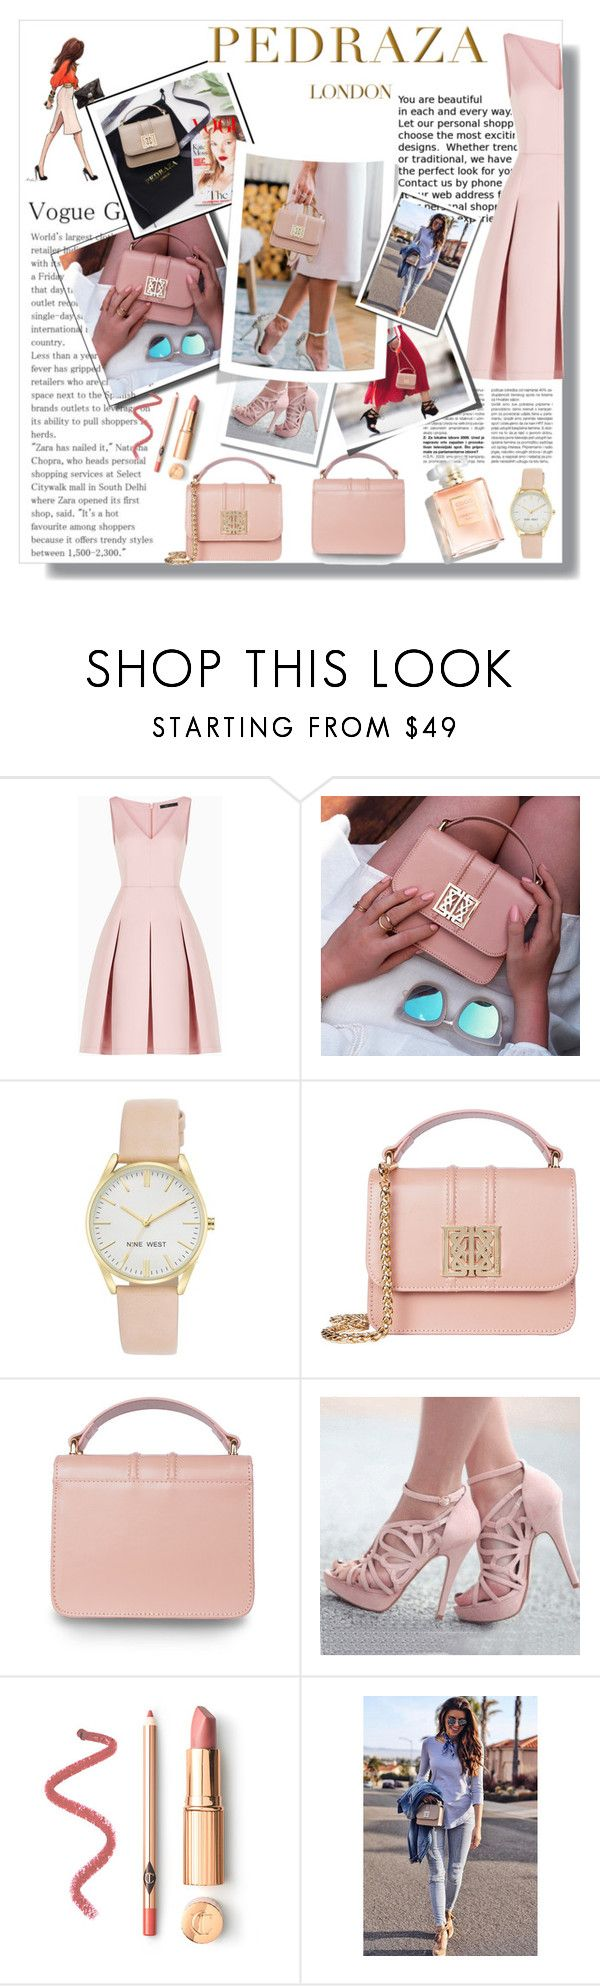 """PREDEZA LONDEN"" by lillivangogh ❤ liked on Polyvore featuring BCBGMAXAZRIA and Nine West"